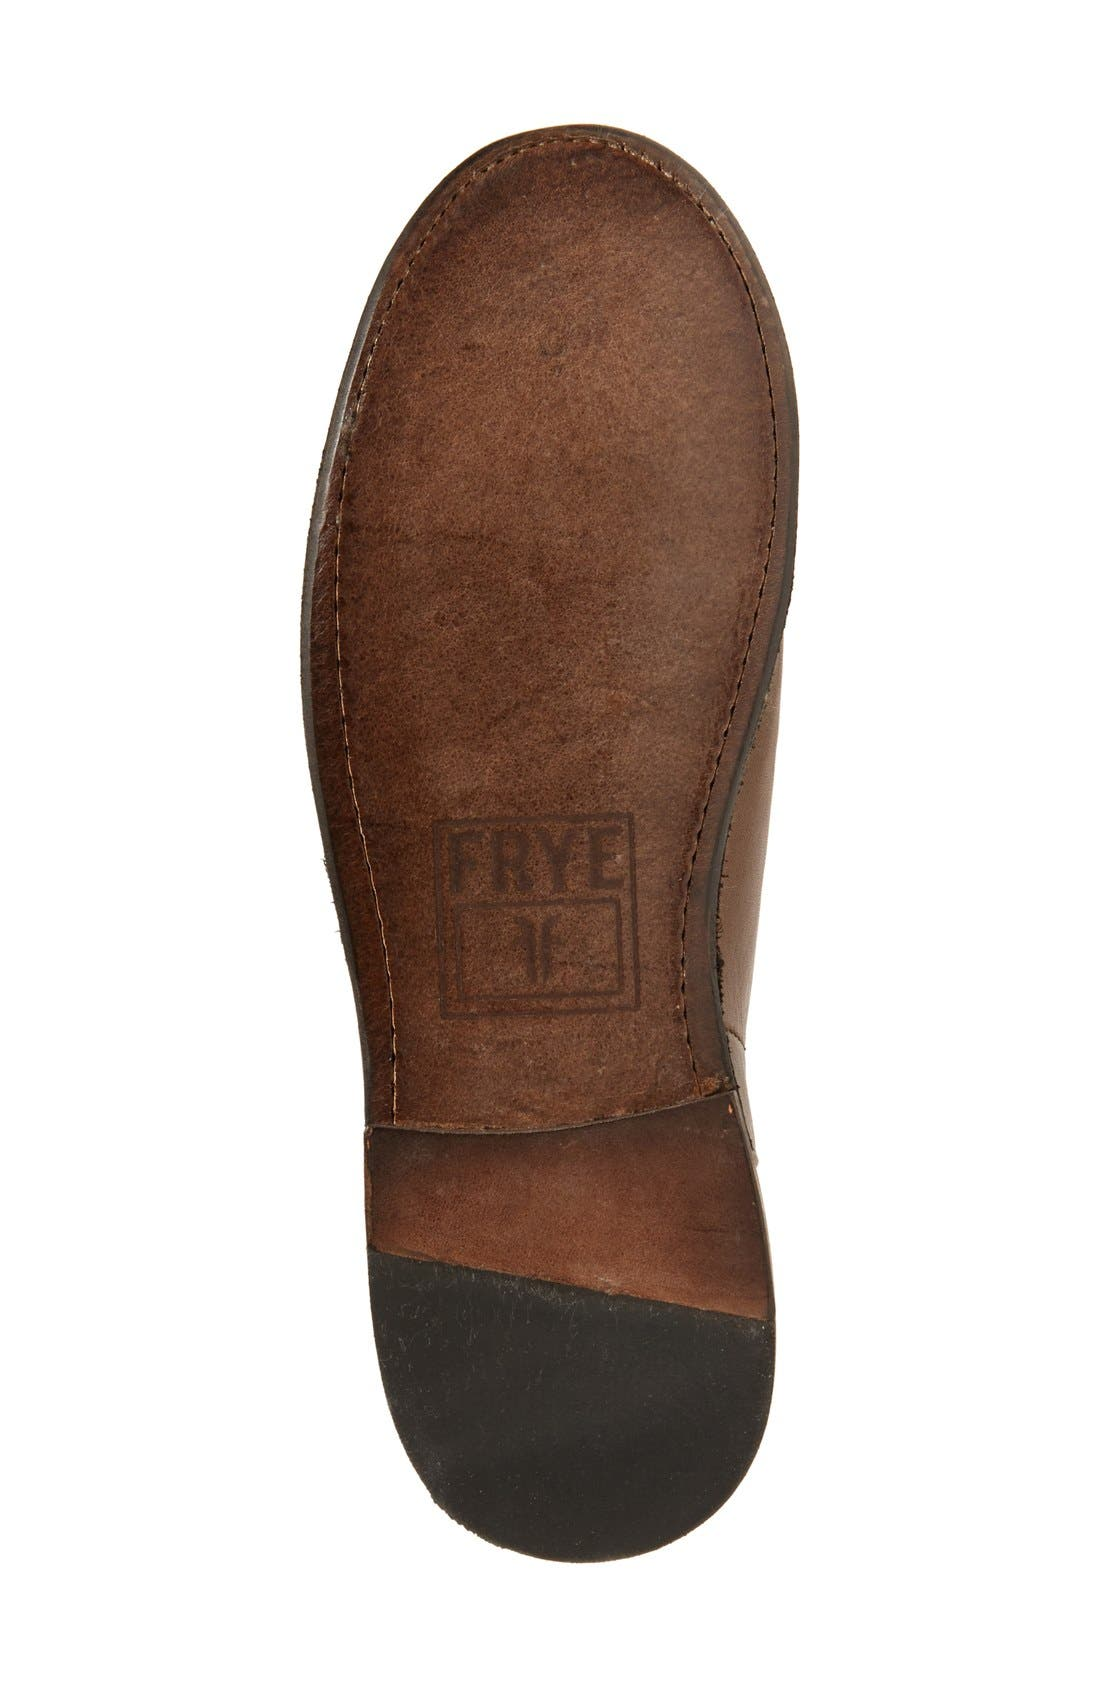 'Paige' Tall Riding Boot,                             Alternate thumbnail 4, color,                             Slate